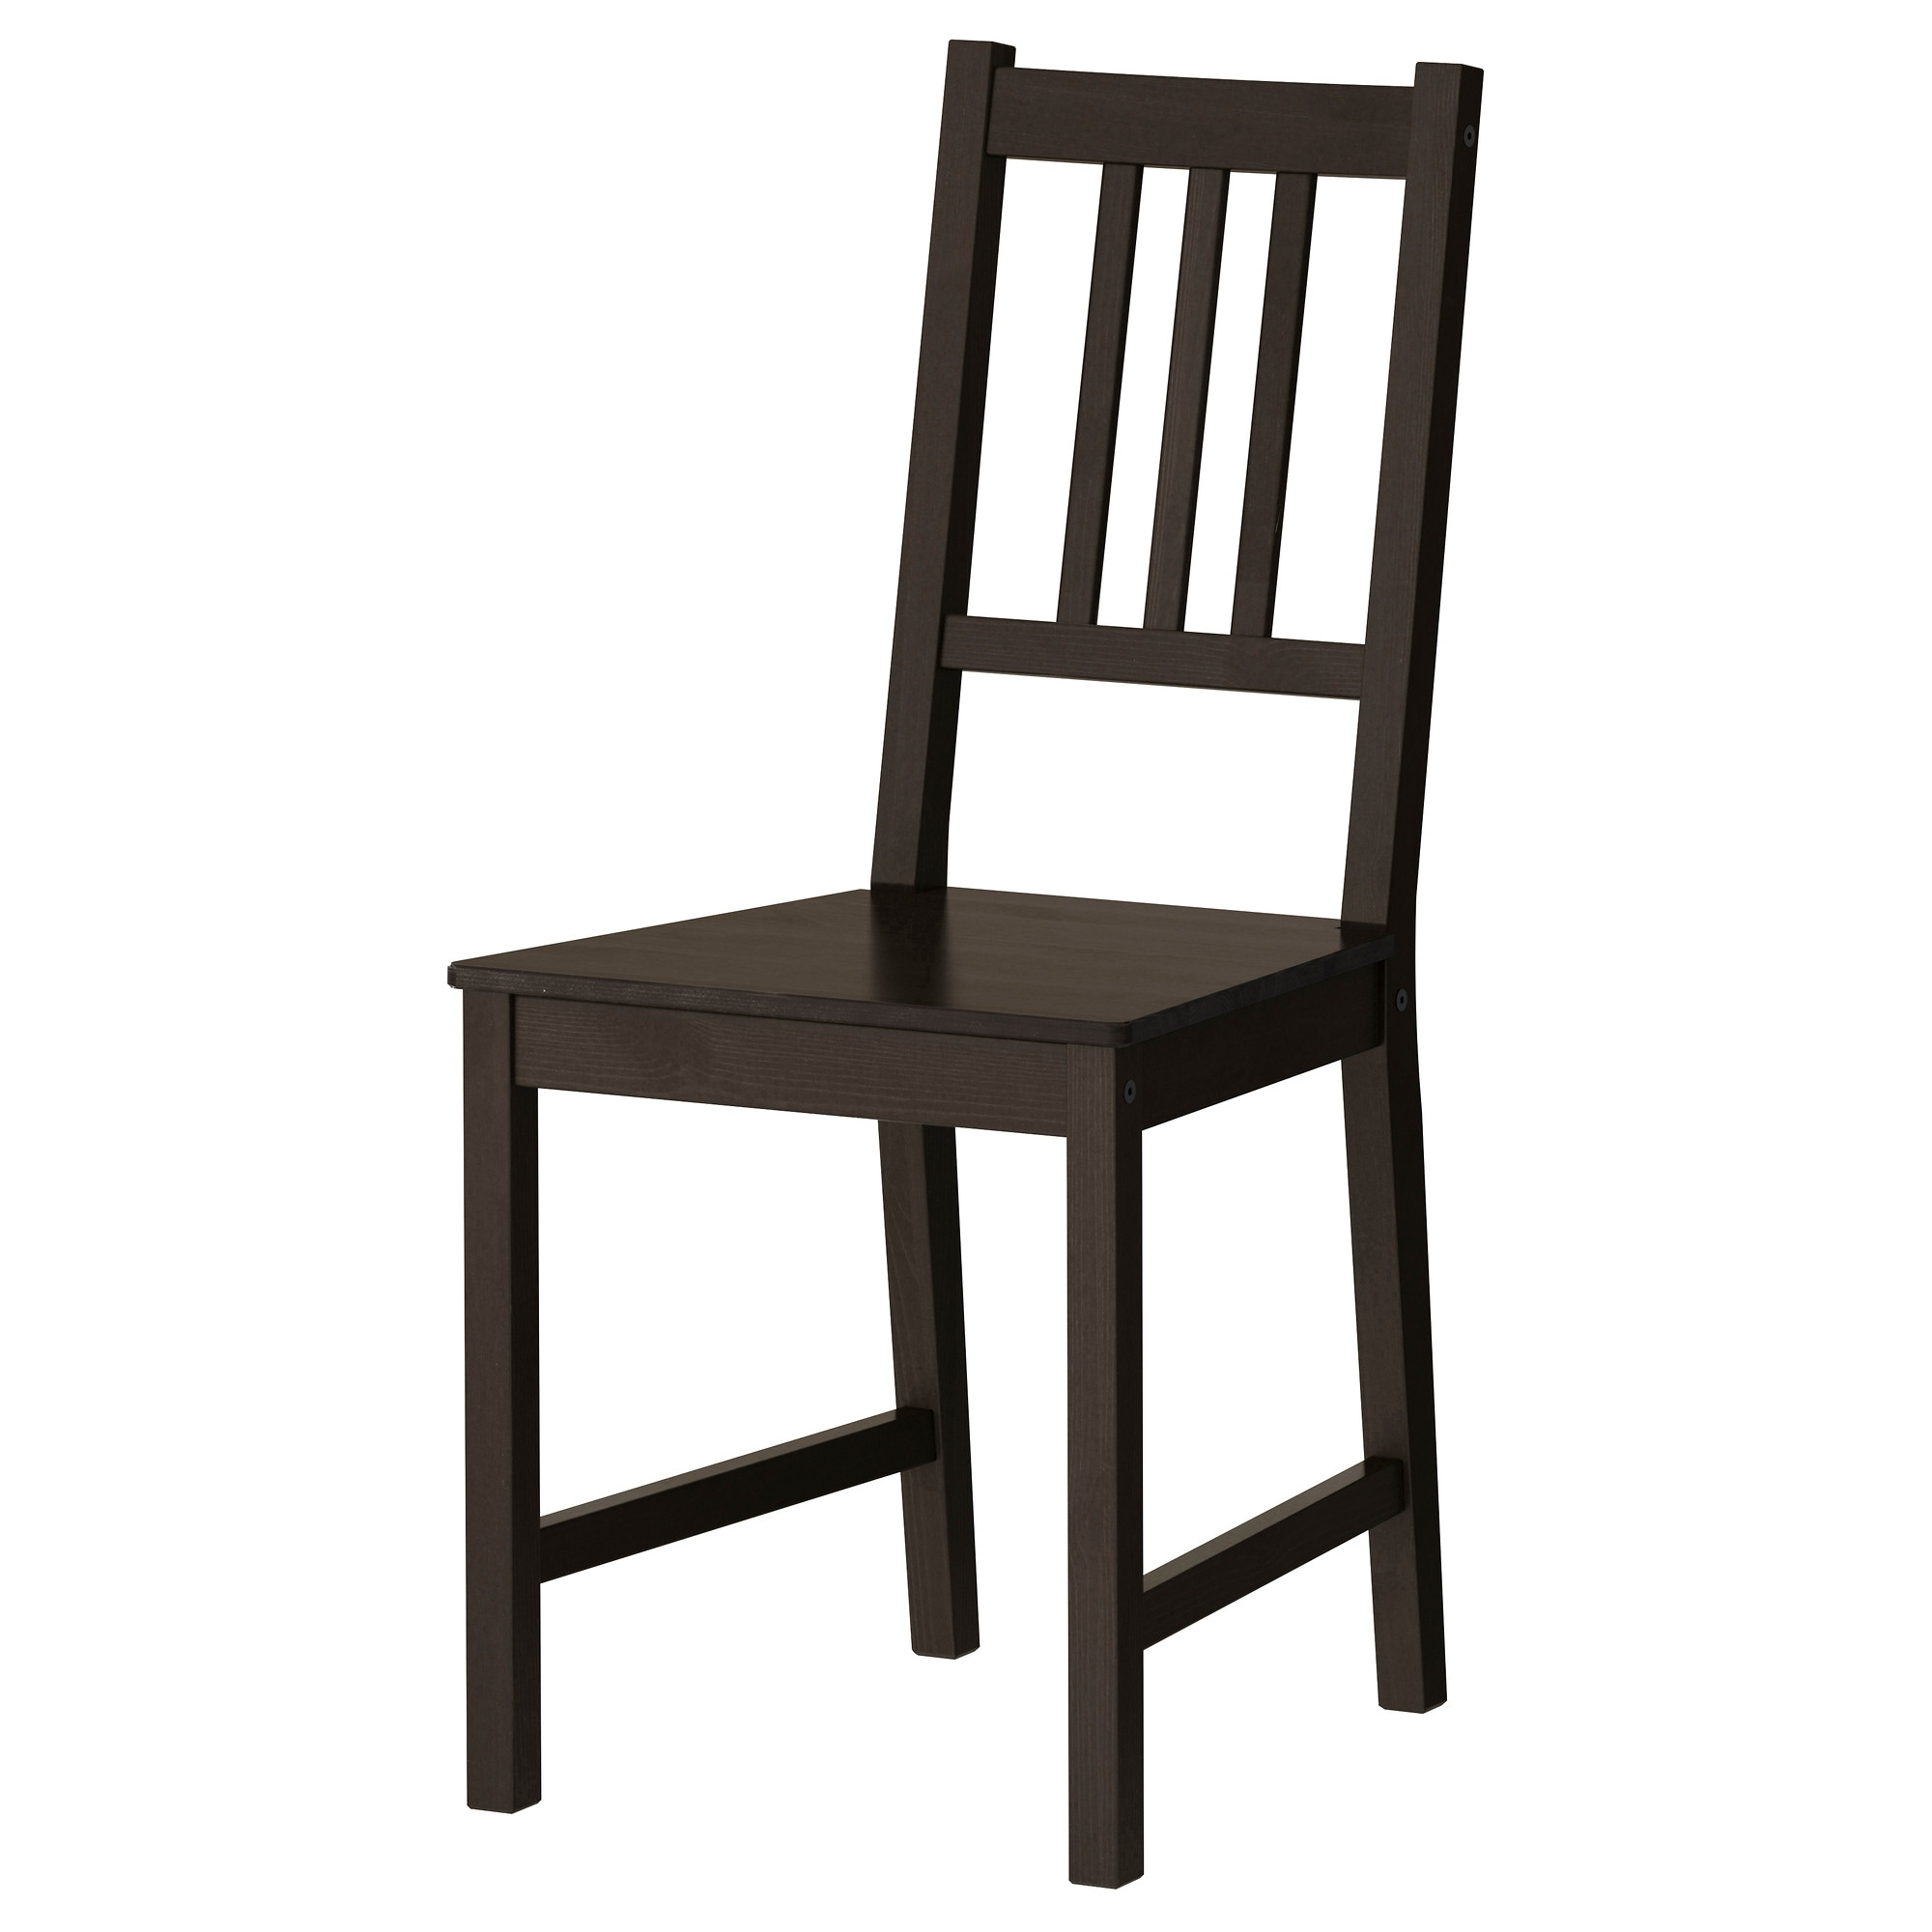 Black chair and white chair - Stefan Chair Brown Black Tested For 243 Lb Width 16 1